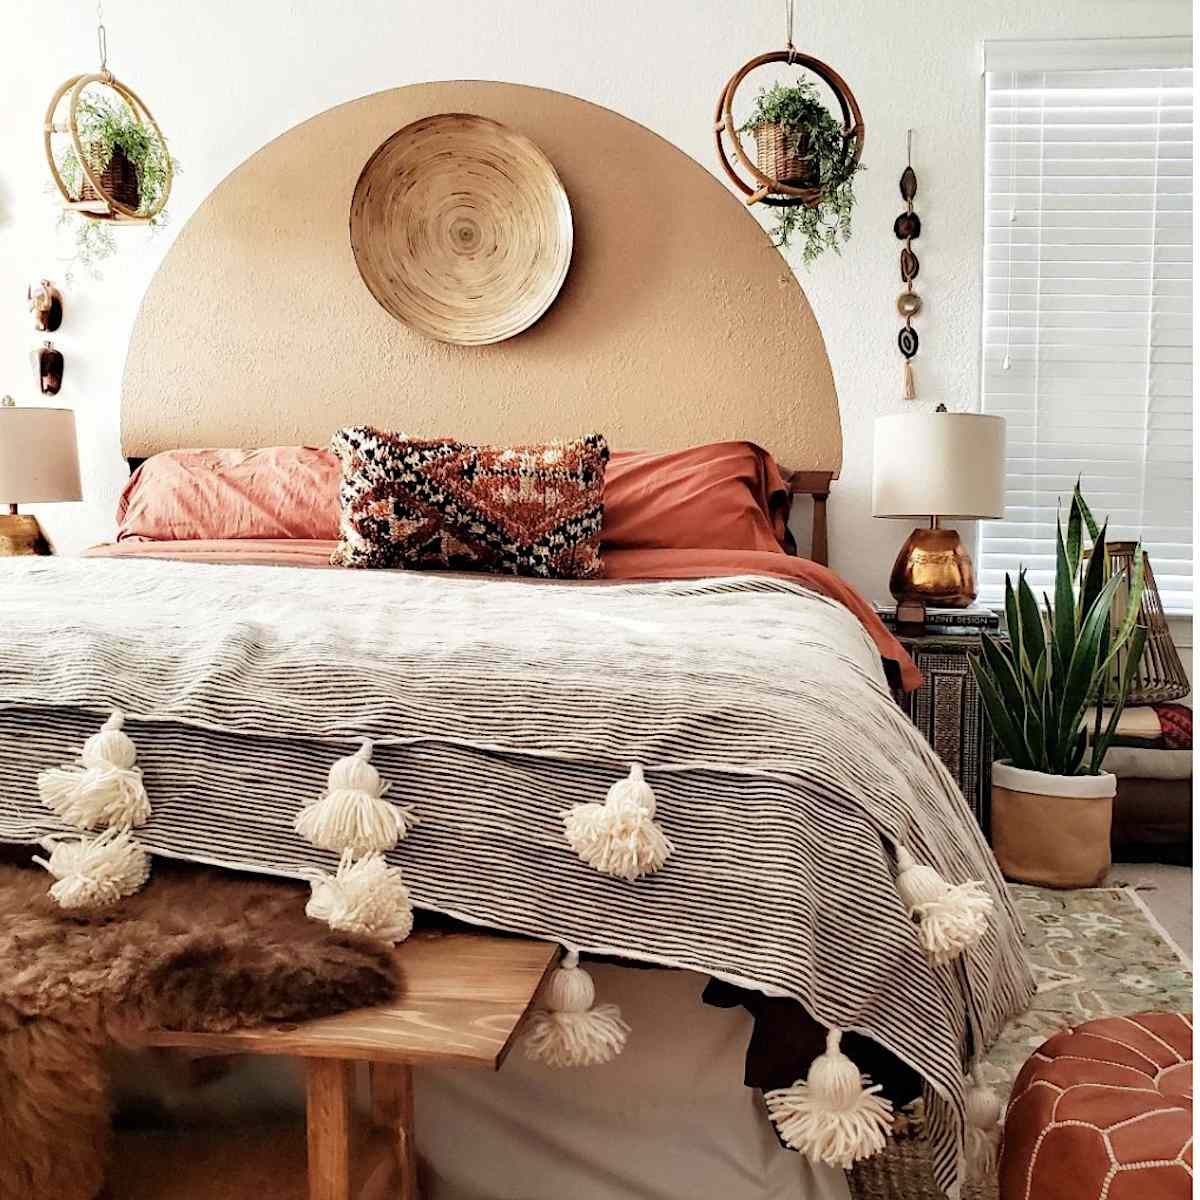 boho style bedroom with warm red, decorated with plants, a painted tan half circle mural over headboard